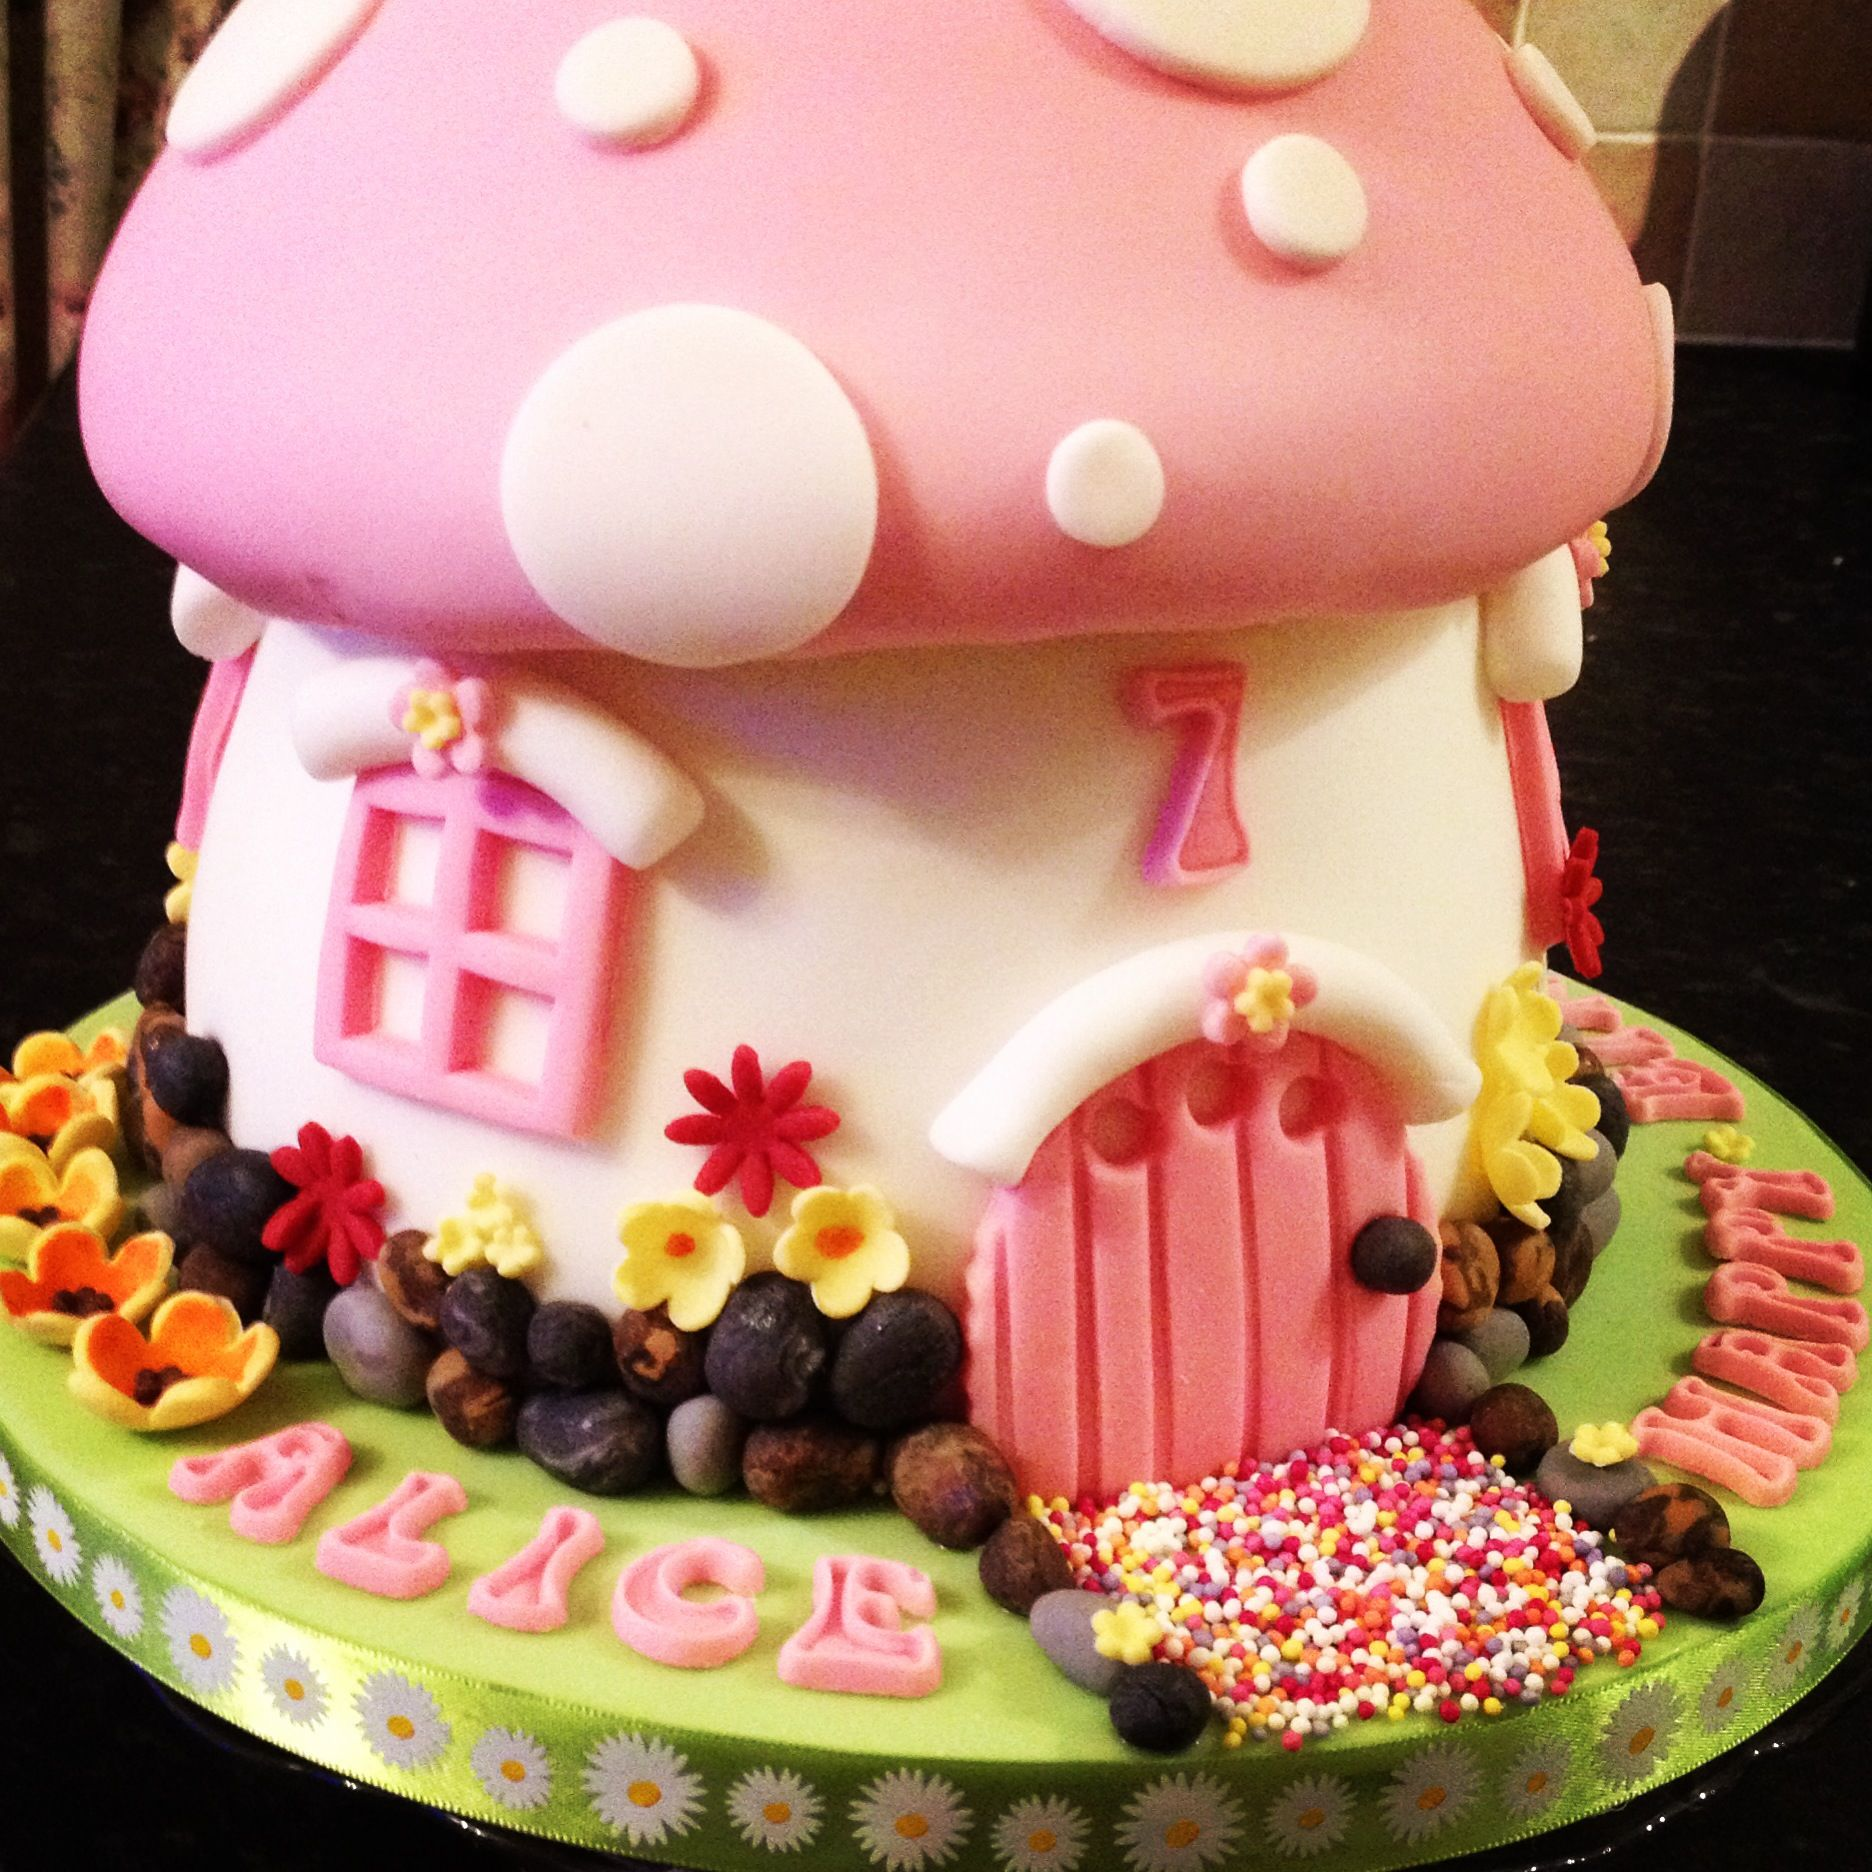 Fairy Birthday Party Decorations Fairy Garden Party This Is A Giant Fairy Toadstool Cake Made Of